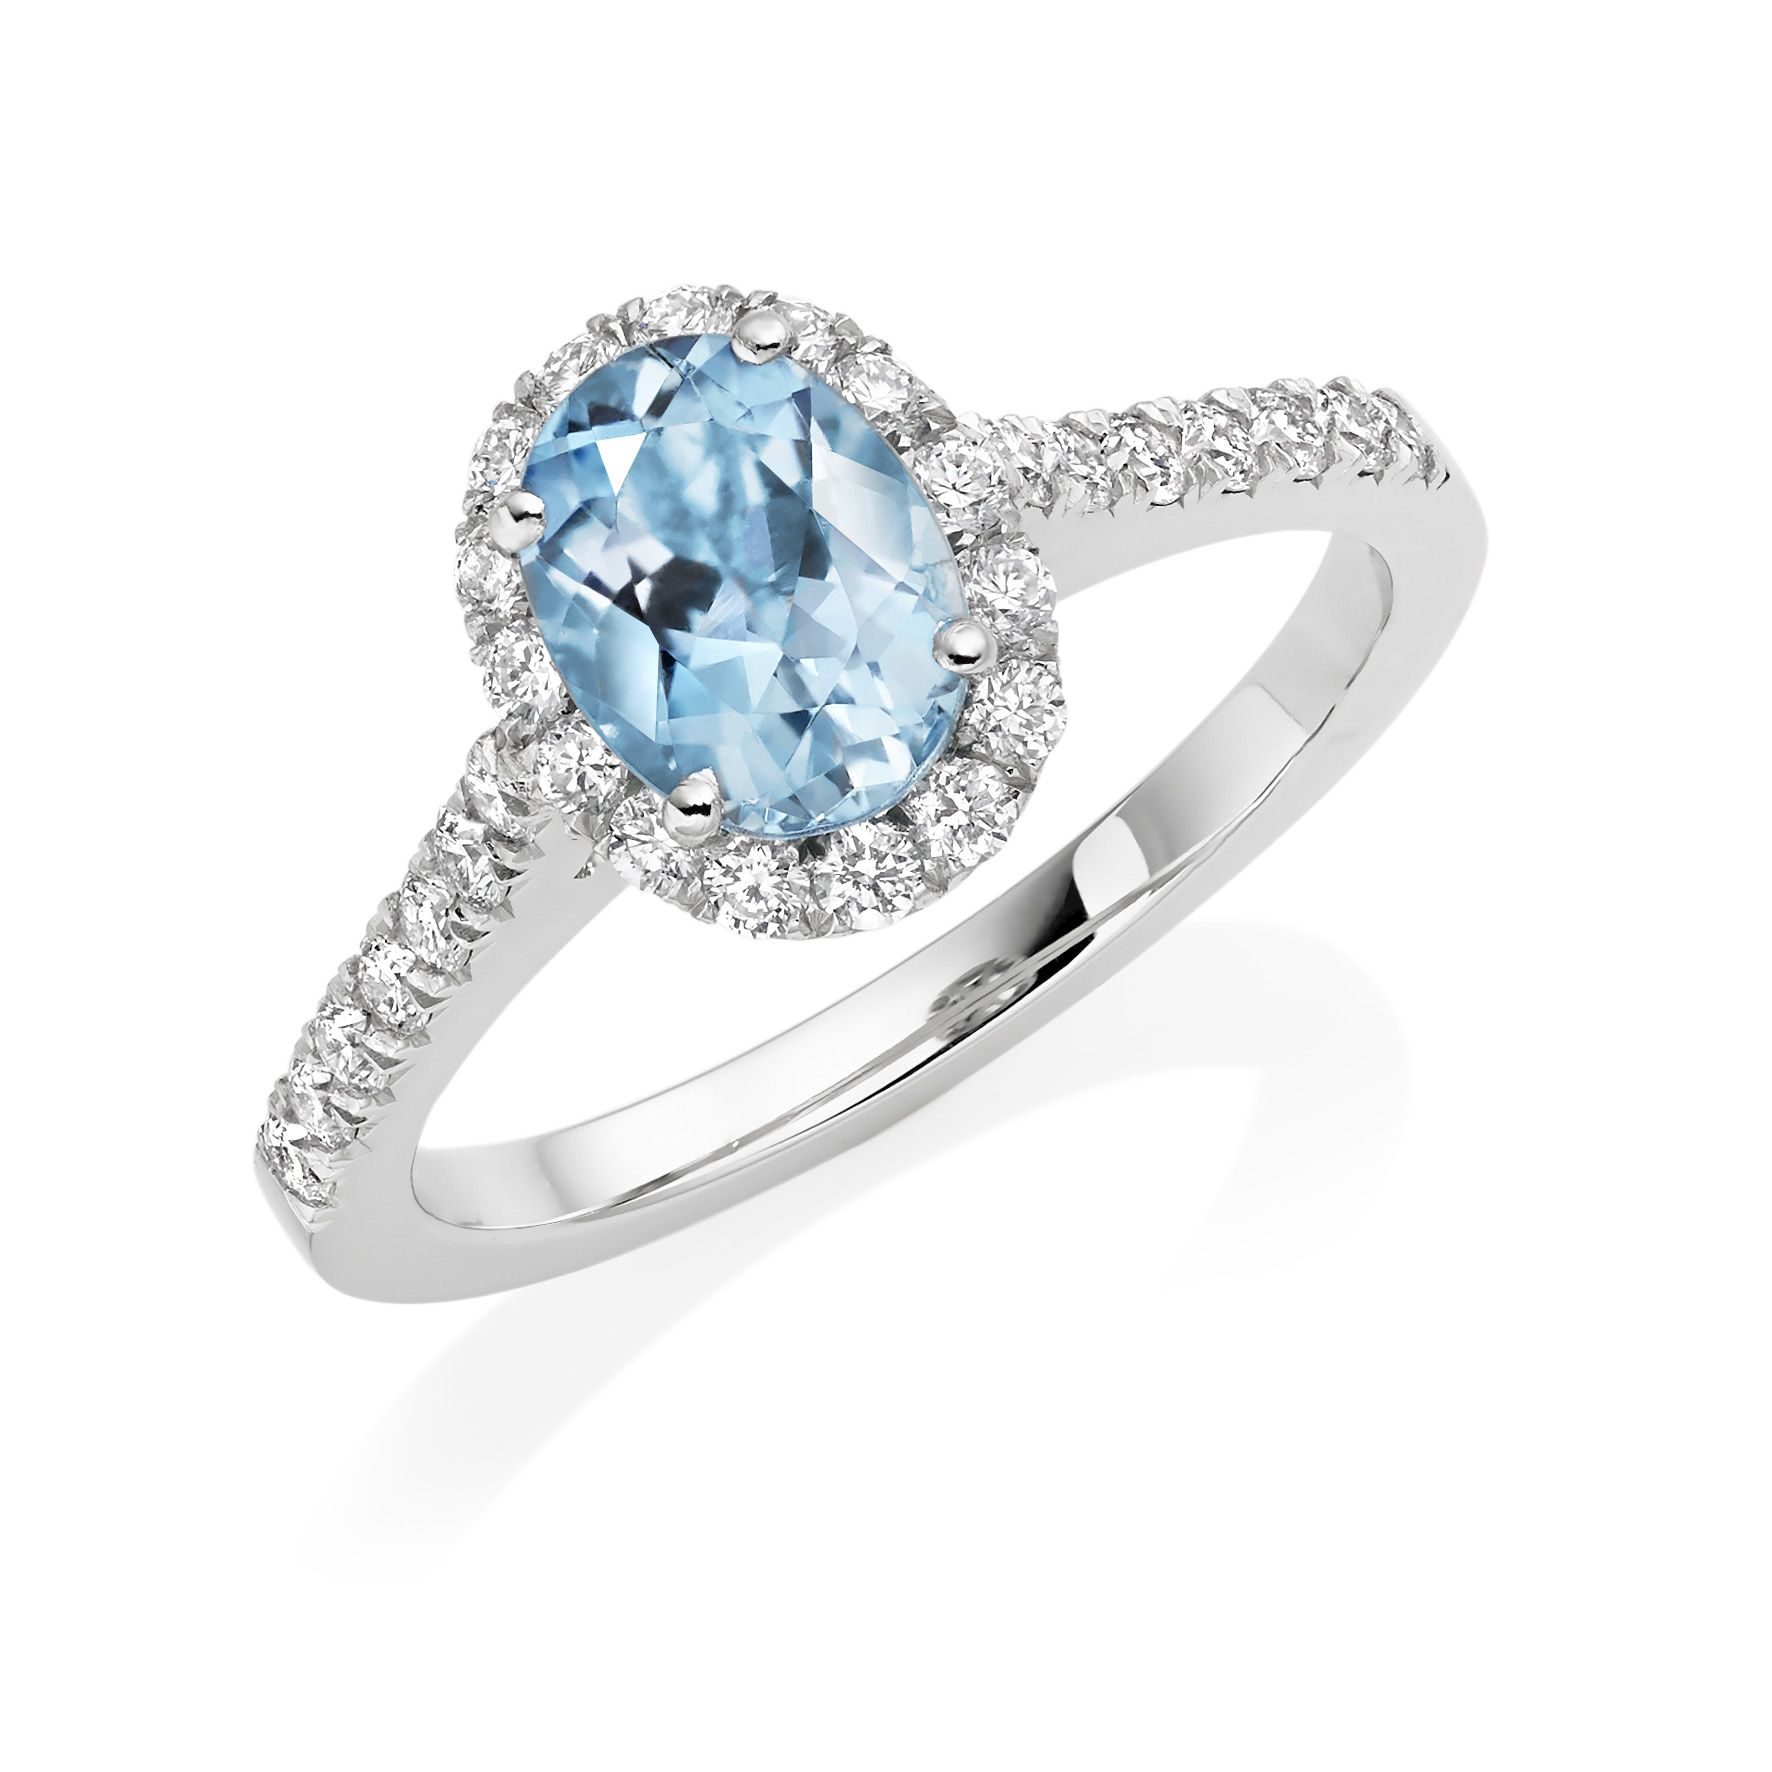 Looking For An Aquamarine Diamond Ring Look No Further Http Www Rennieco Com Catalogsearch Res Emerald Engagement Ring Halo Diamond Halo Diamond Ring